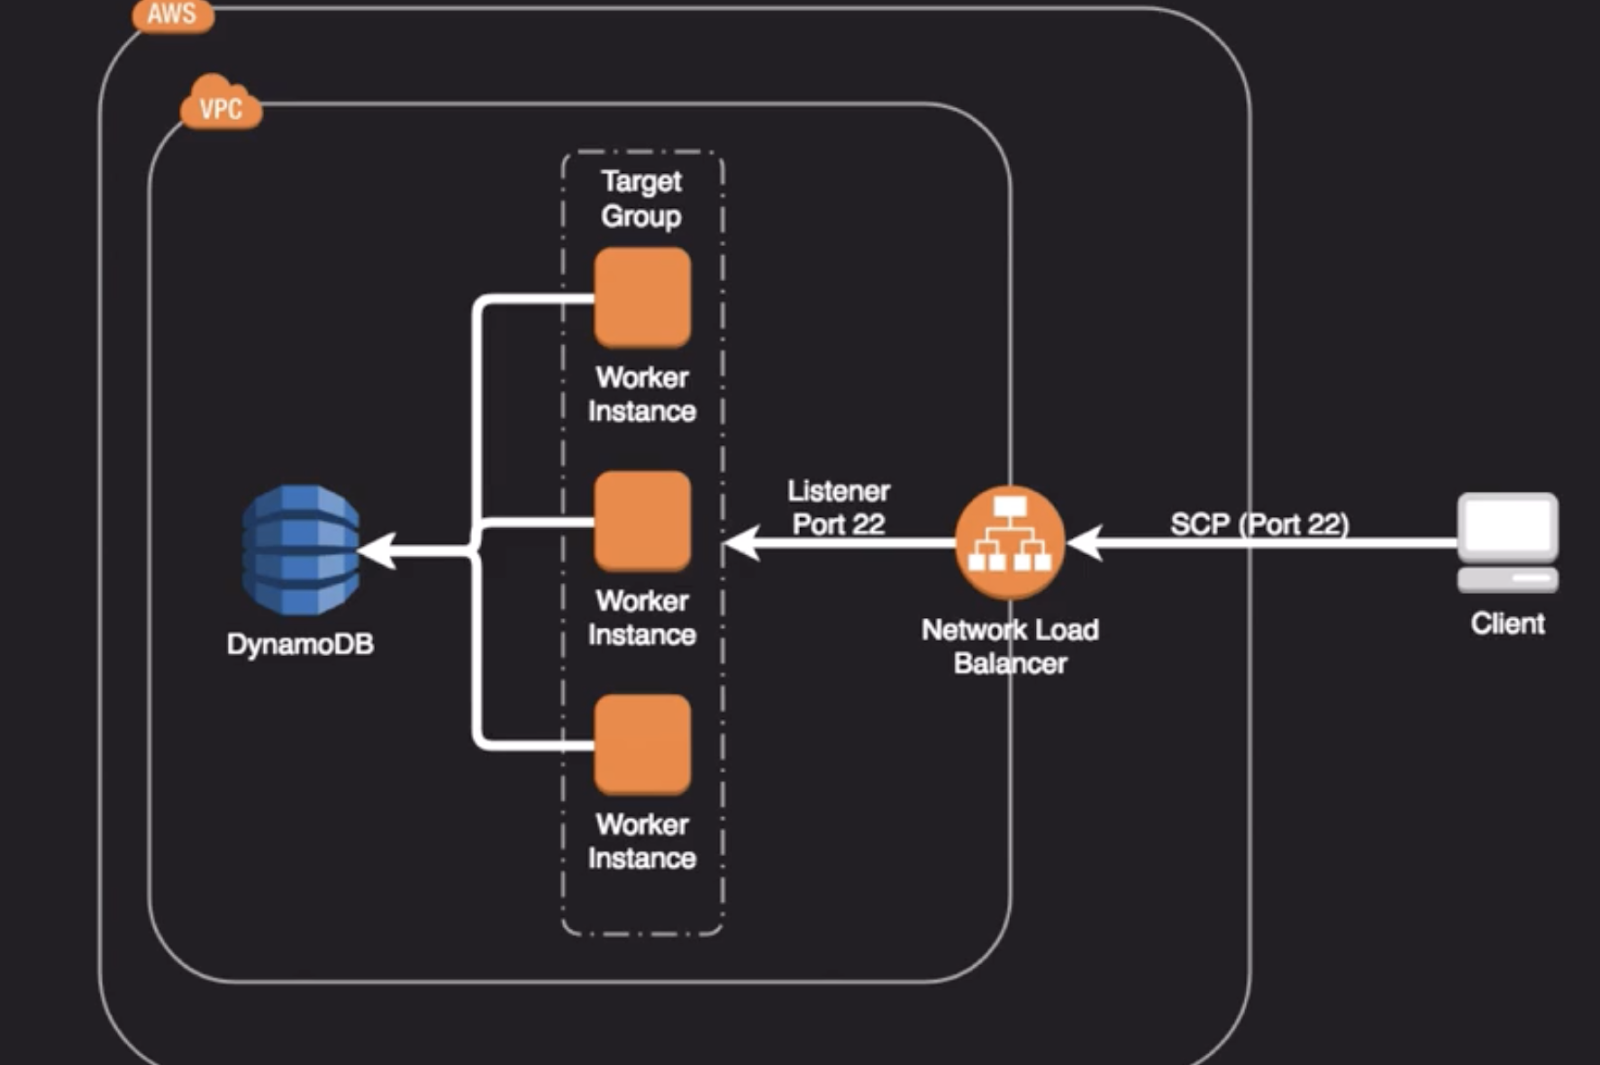 Rafael Salerno - DevOps Engineering: What should we know about AWS